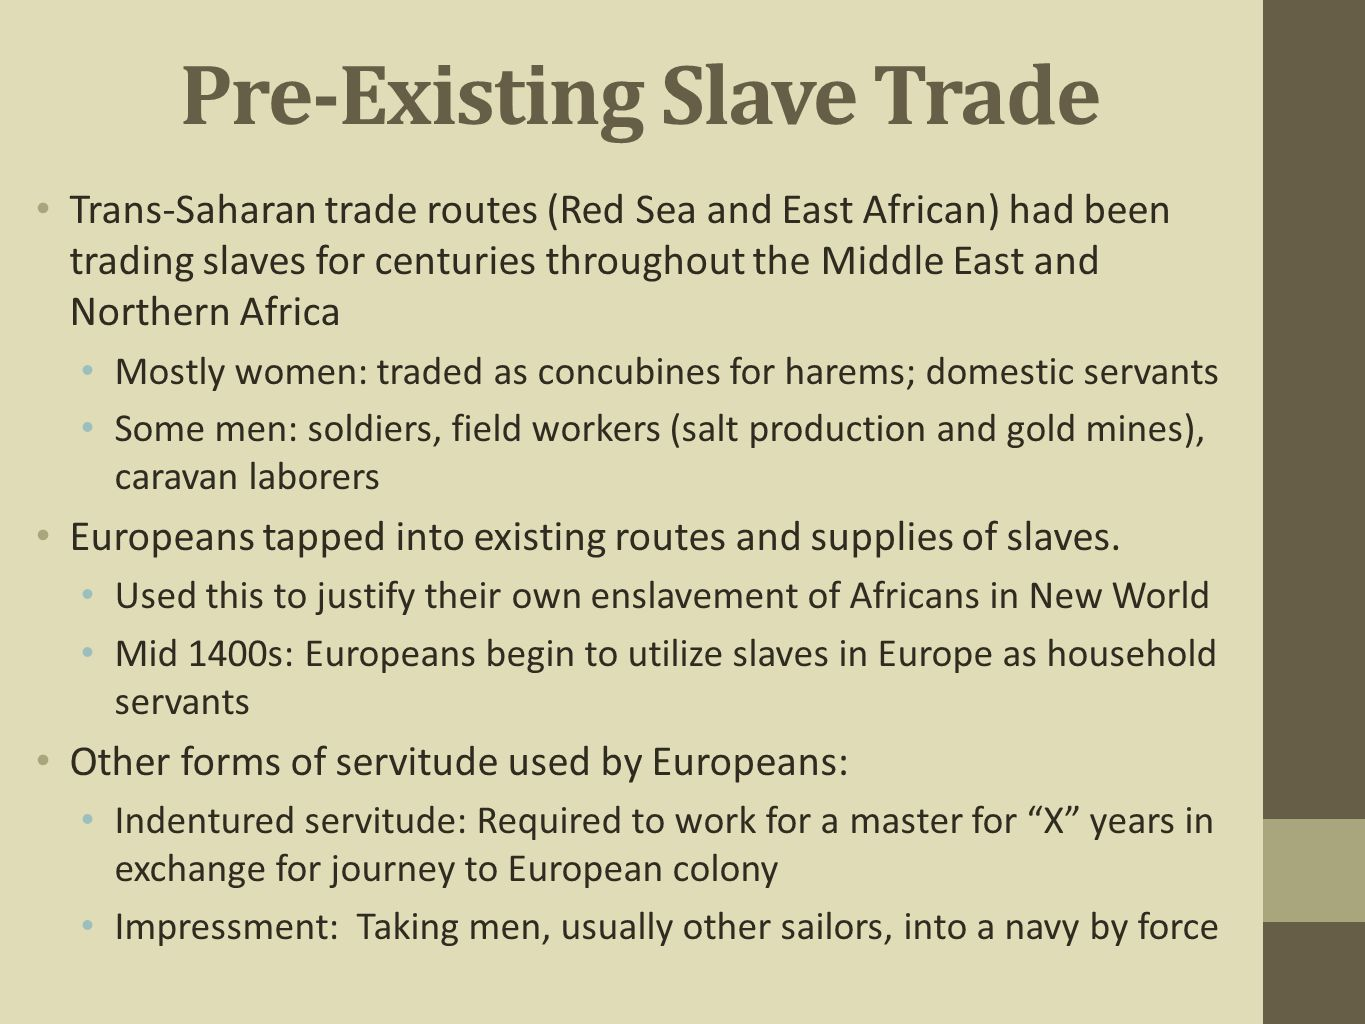 from indentured servitude to slavery essay Open document below is an essay on indentured servitude and slavery from anti essays, your source for research papers, essays, and term paper examples.